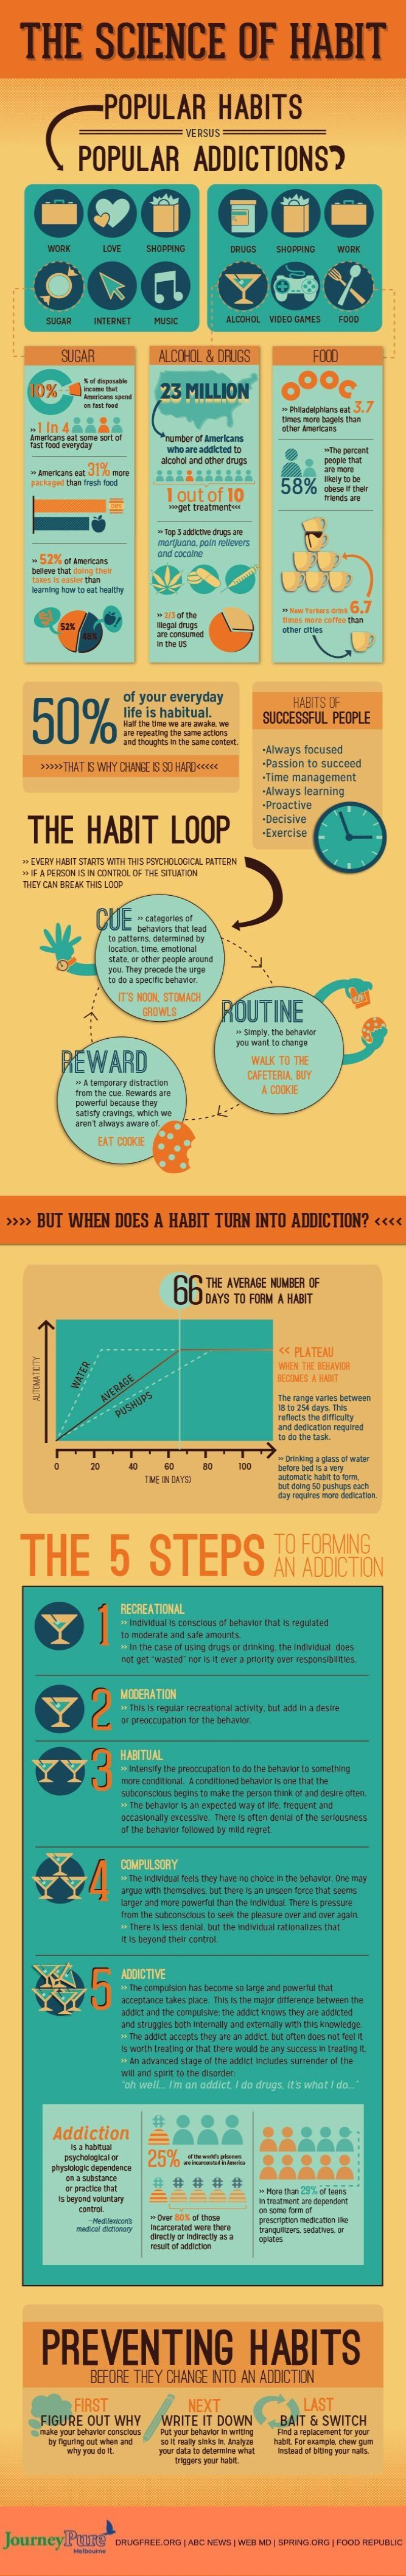 Habit Vs Addiction: Learning to Read the Signs - Infographic